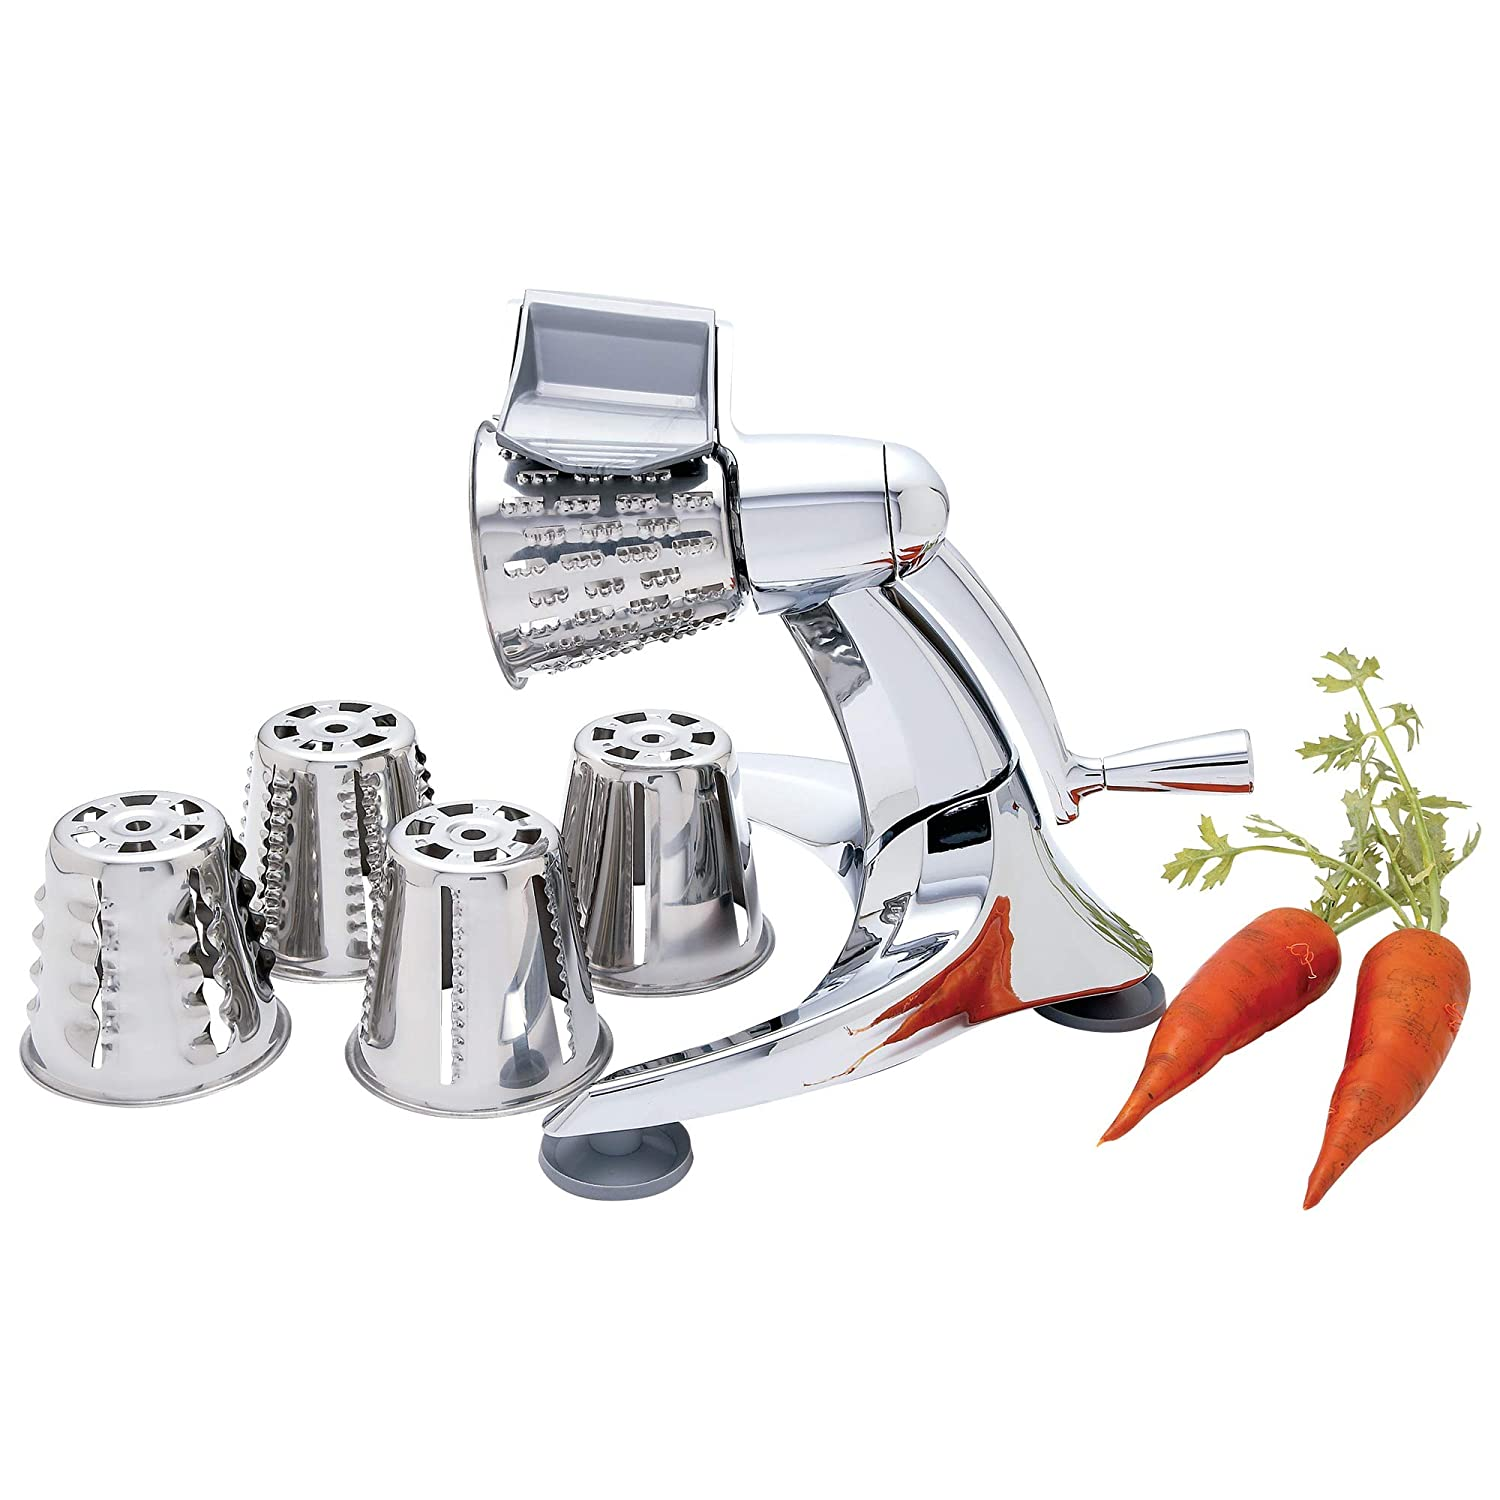 Royal Giant Vegetable Chopper